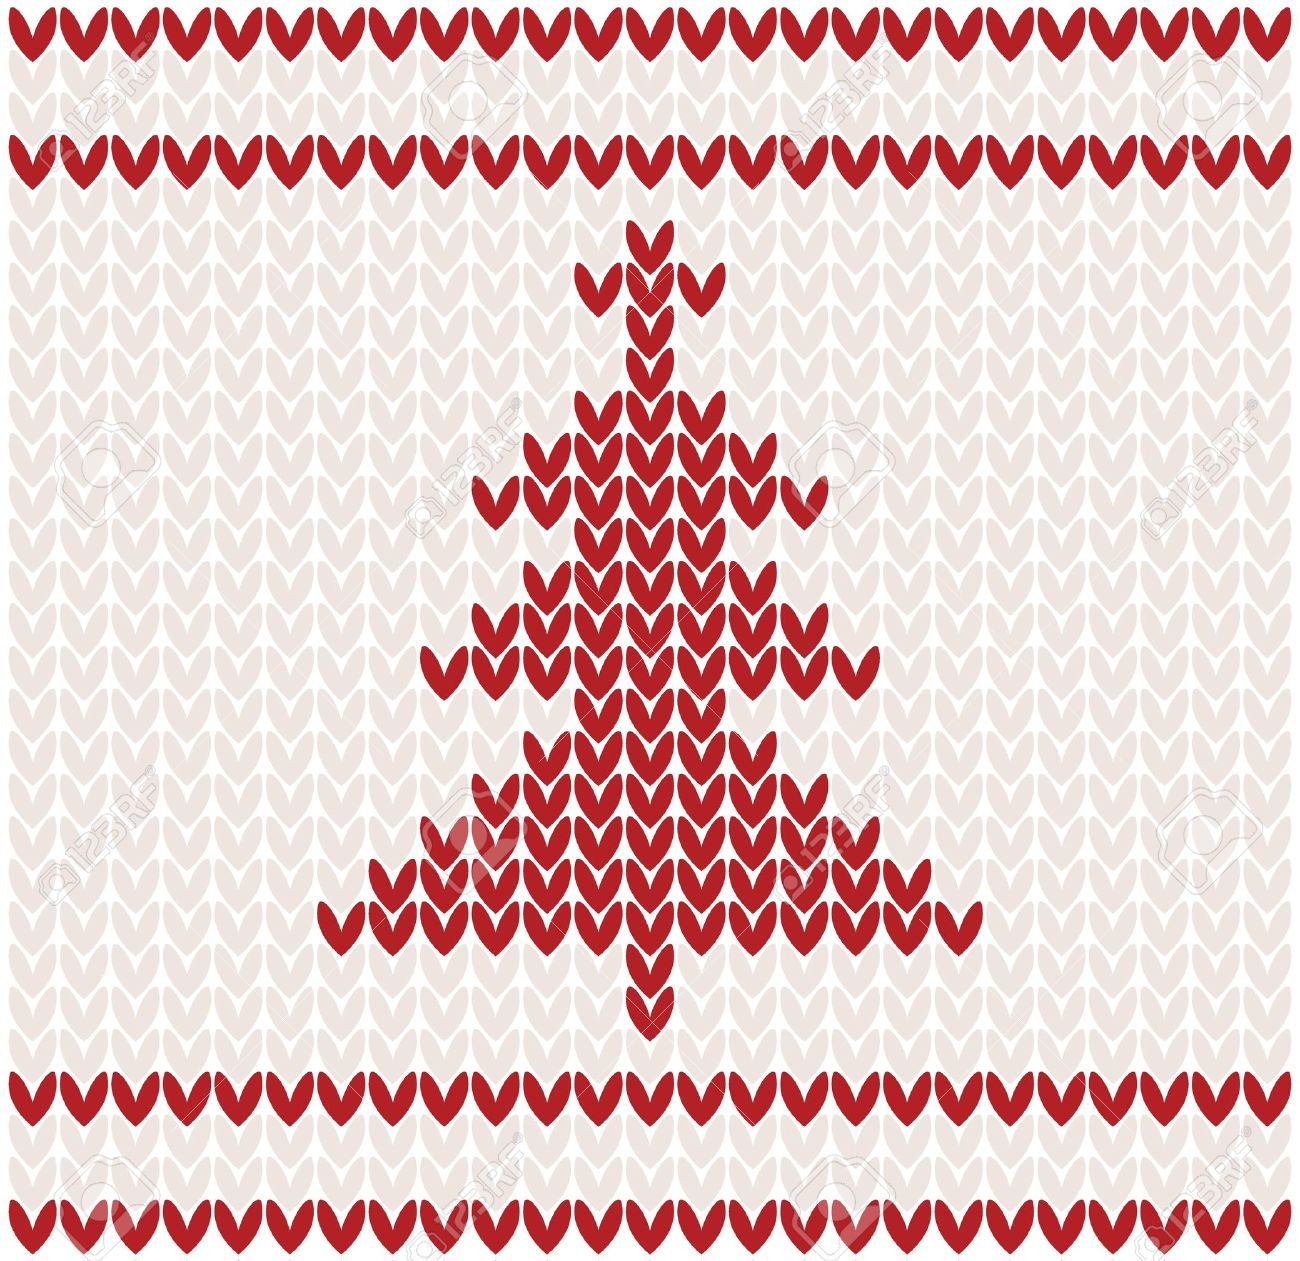 Christmas Tree Knitted Pattern Illustration Royalty Free Cliparts ...